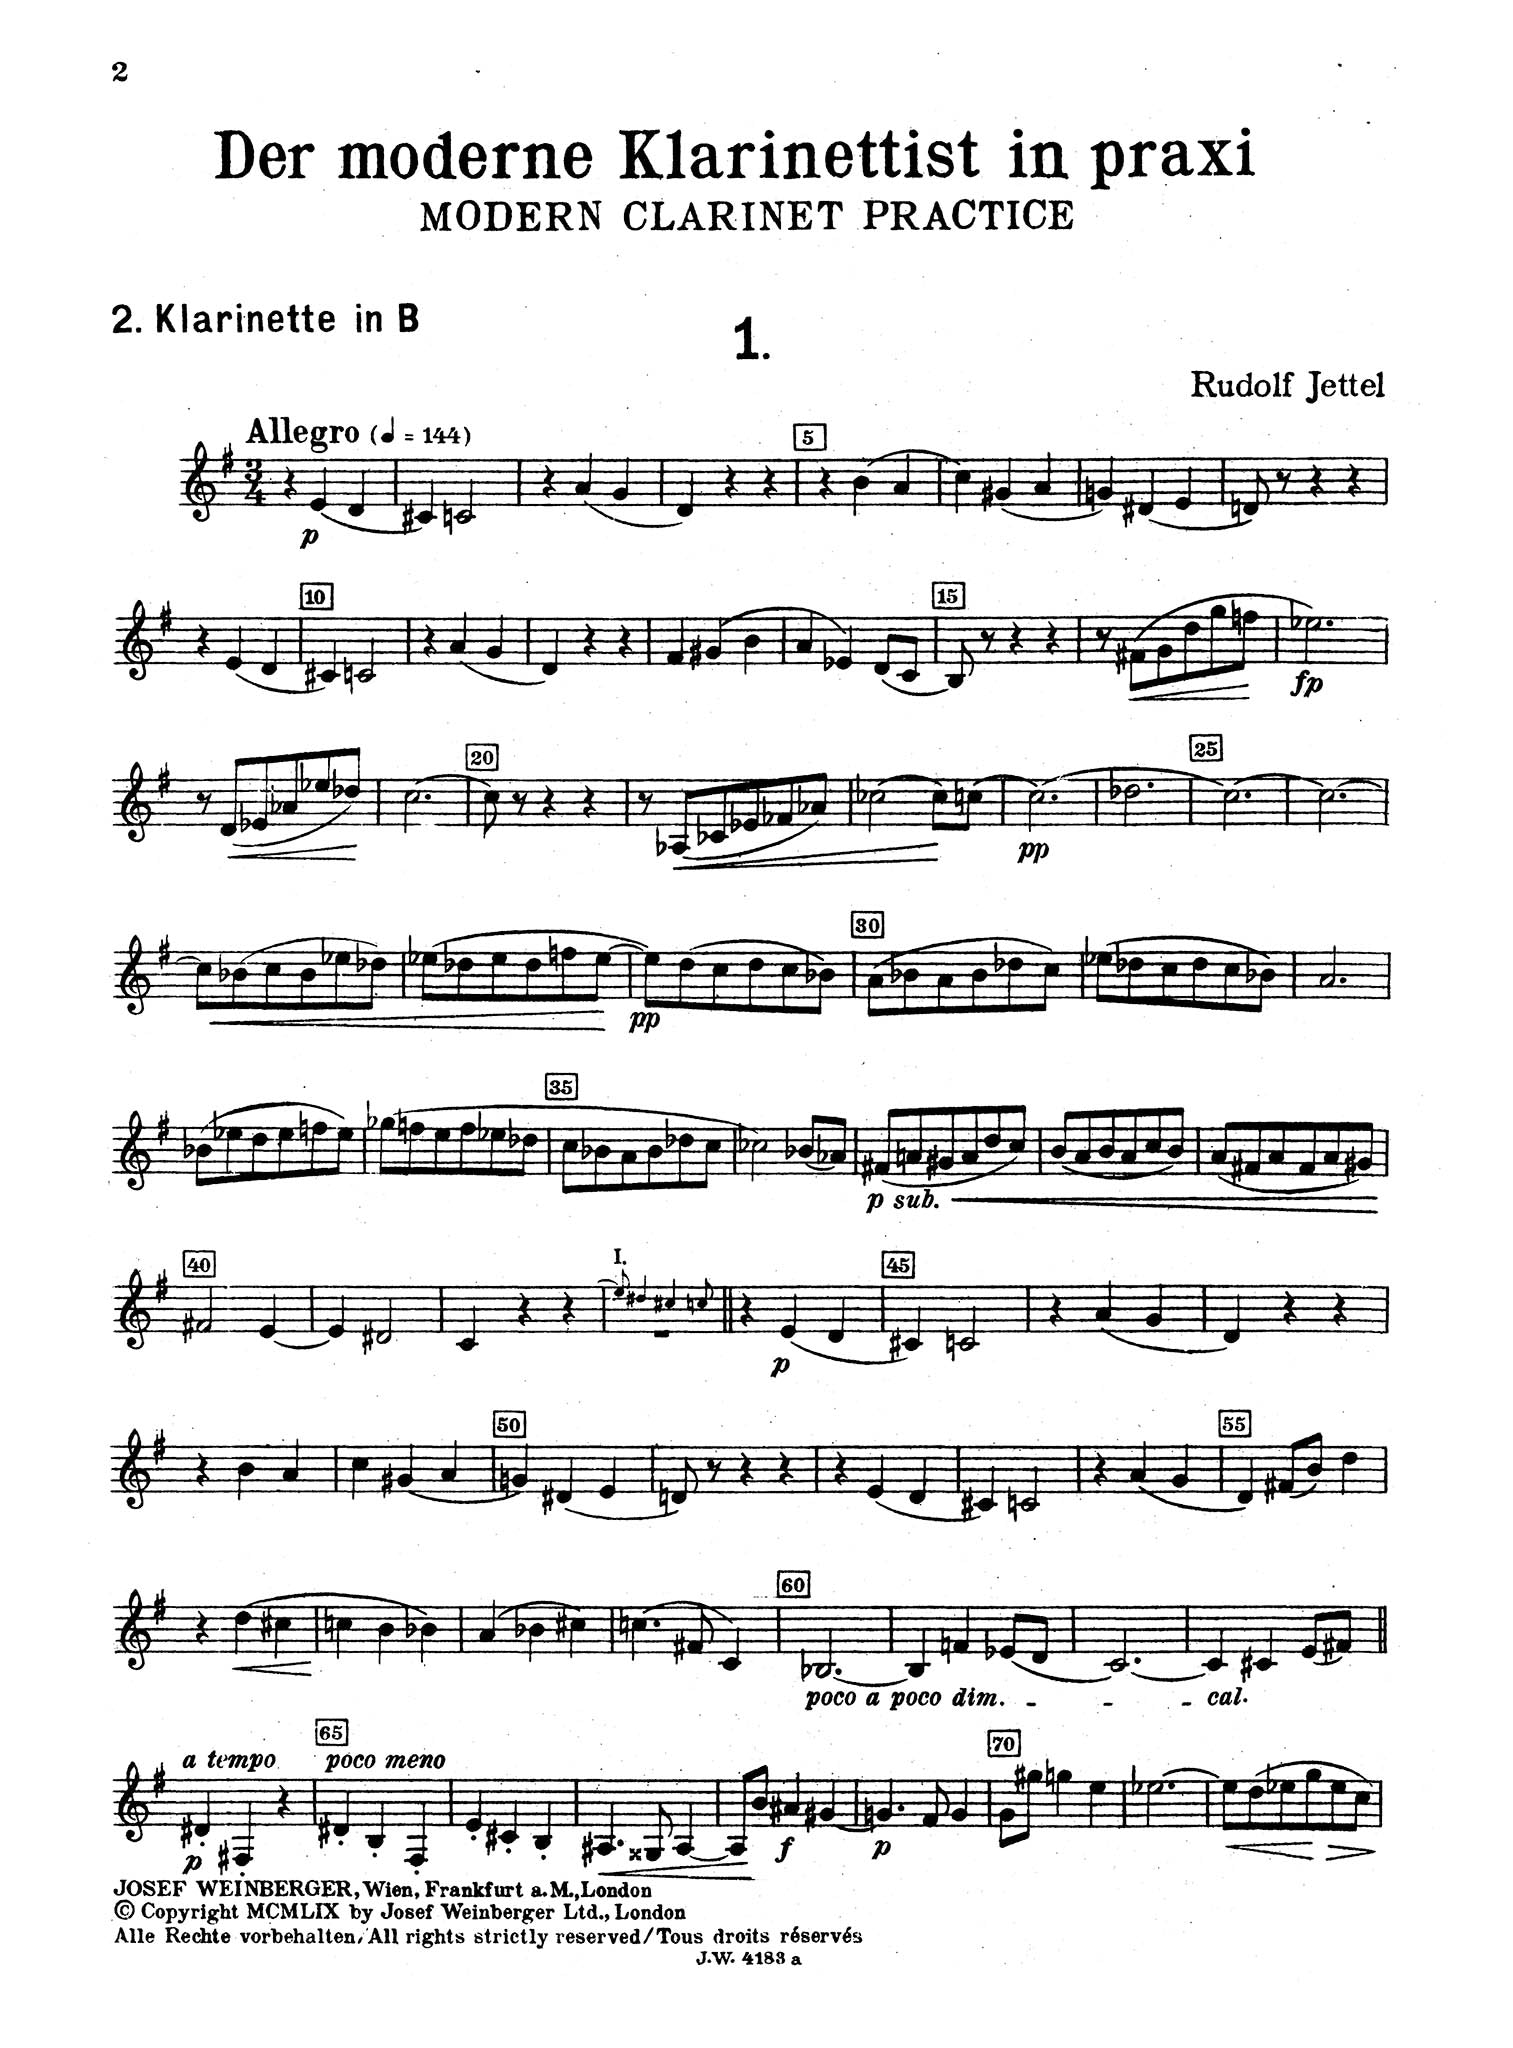 Modern Clarinet Practice, Book 1 Second Clarinet part